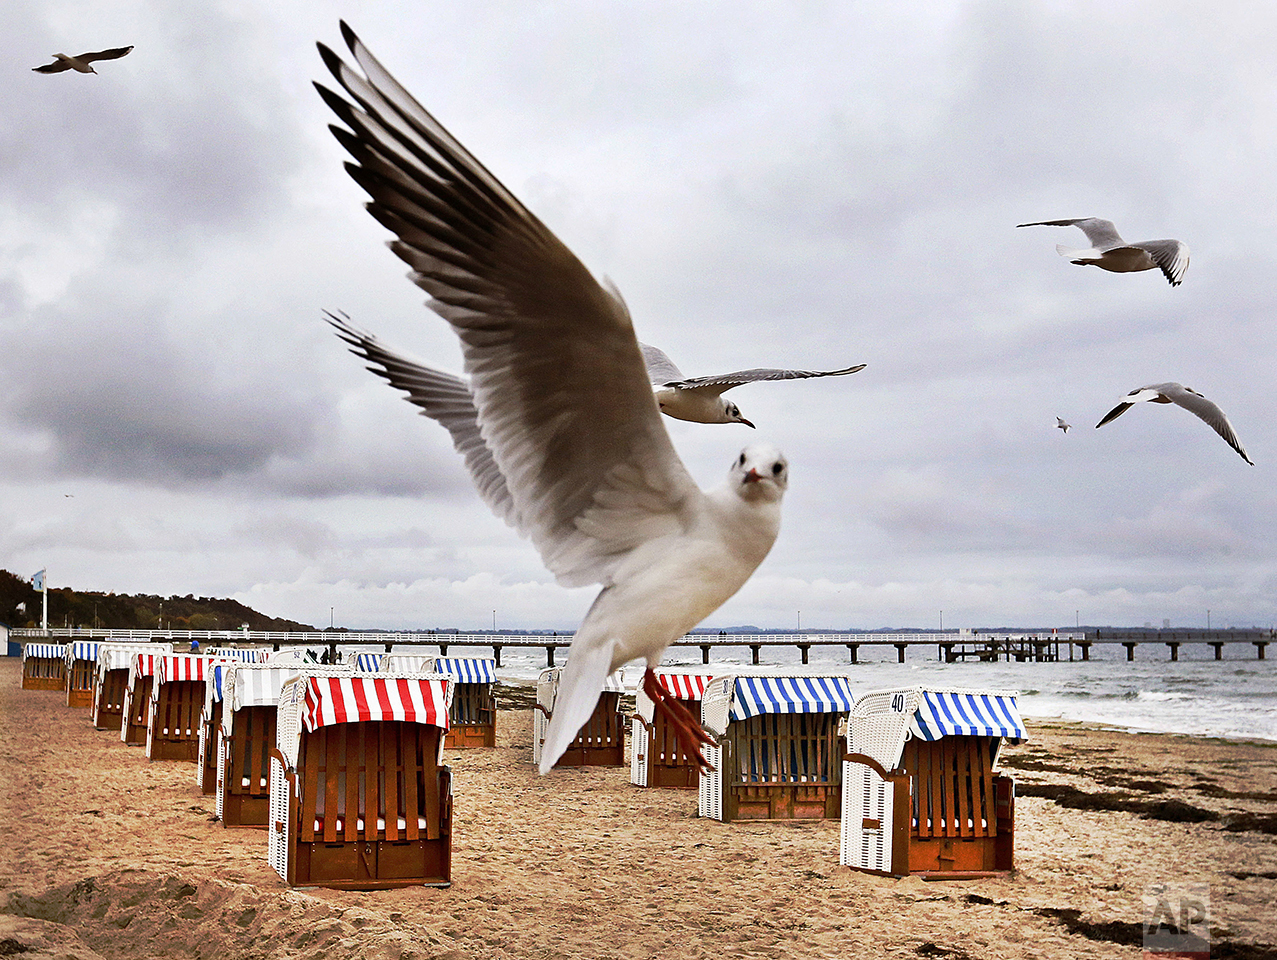 Sea gulls fly over beach chairs at the beach of the Baltic Sea in Timmendorfer Strand, on Oct. 22, 2016. (AP Photo/Michael Probst)